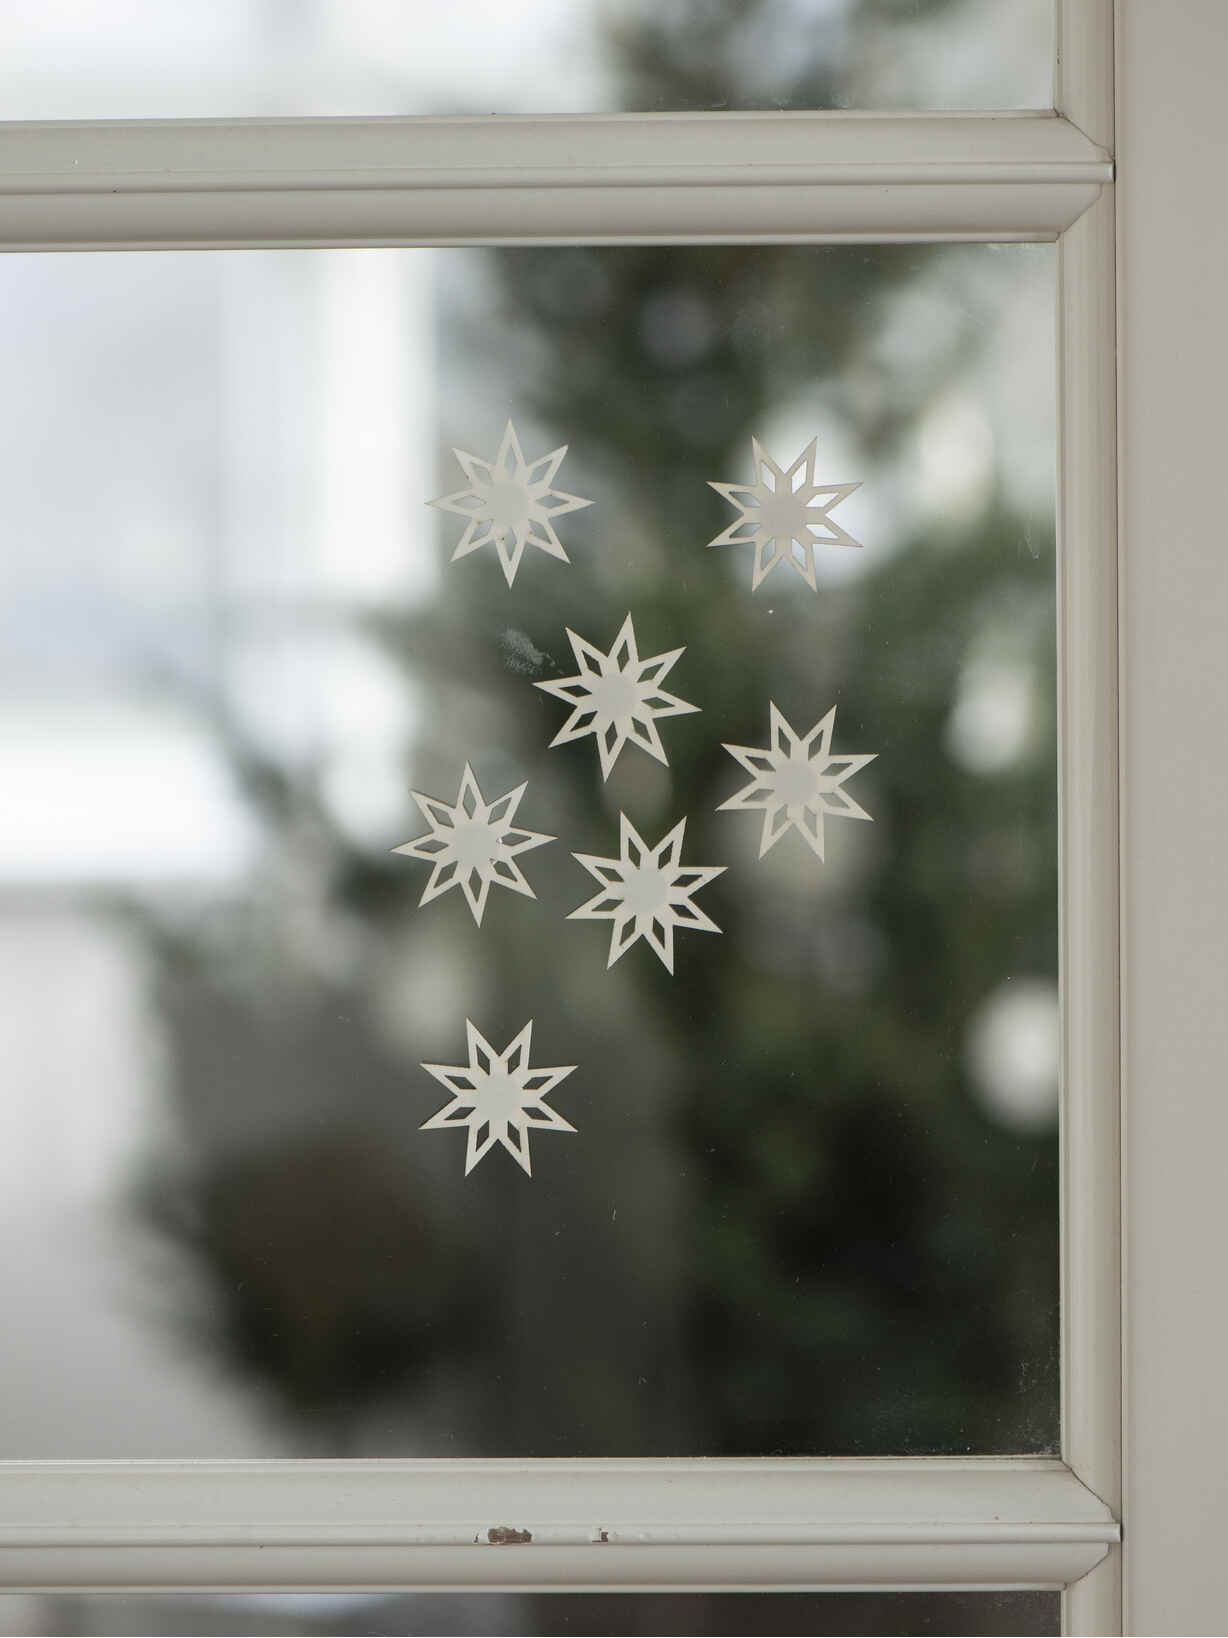 Nordic House Snowflake Window Stickers